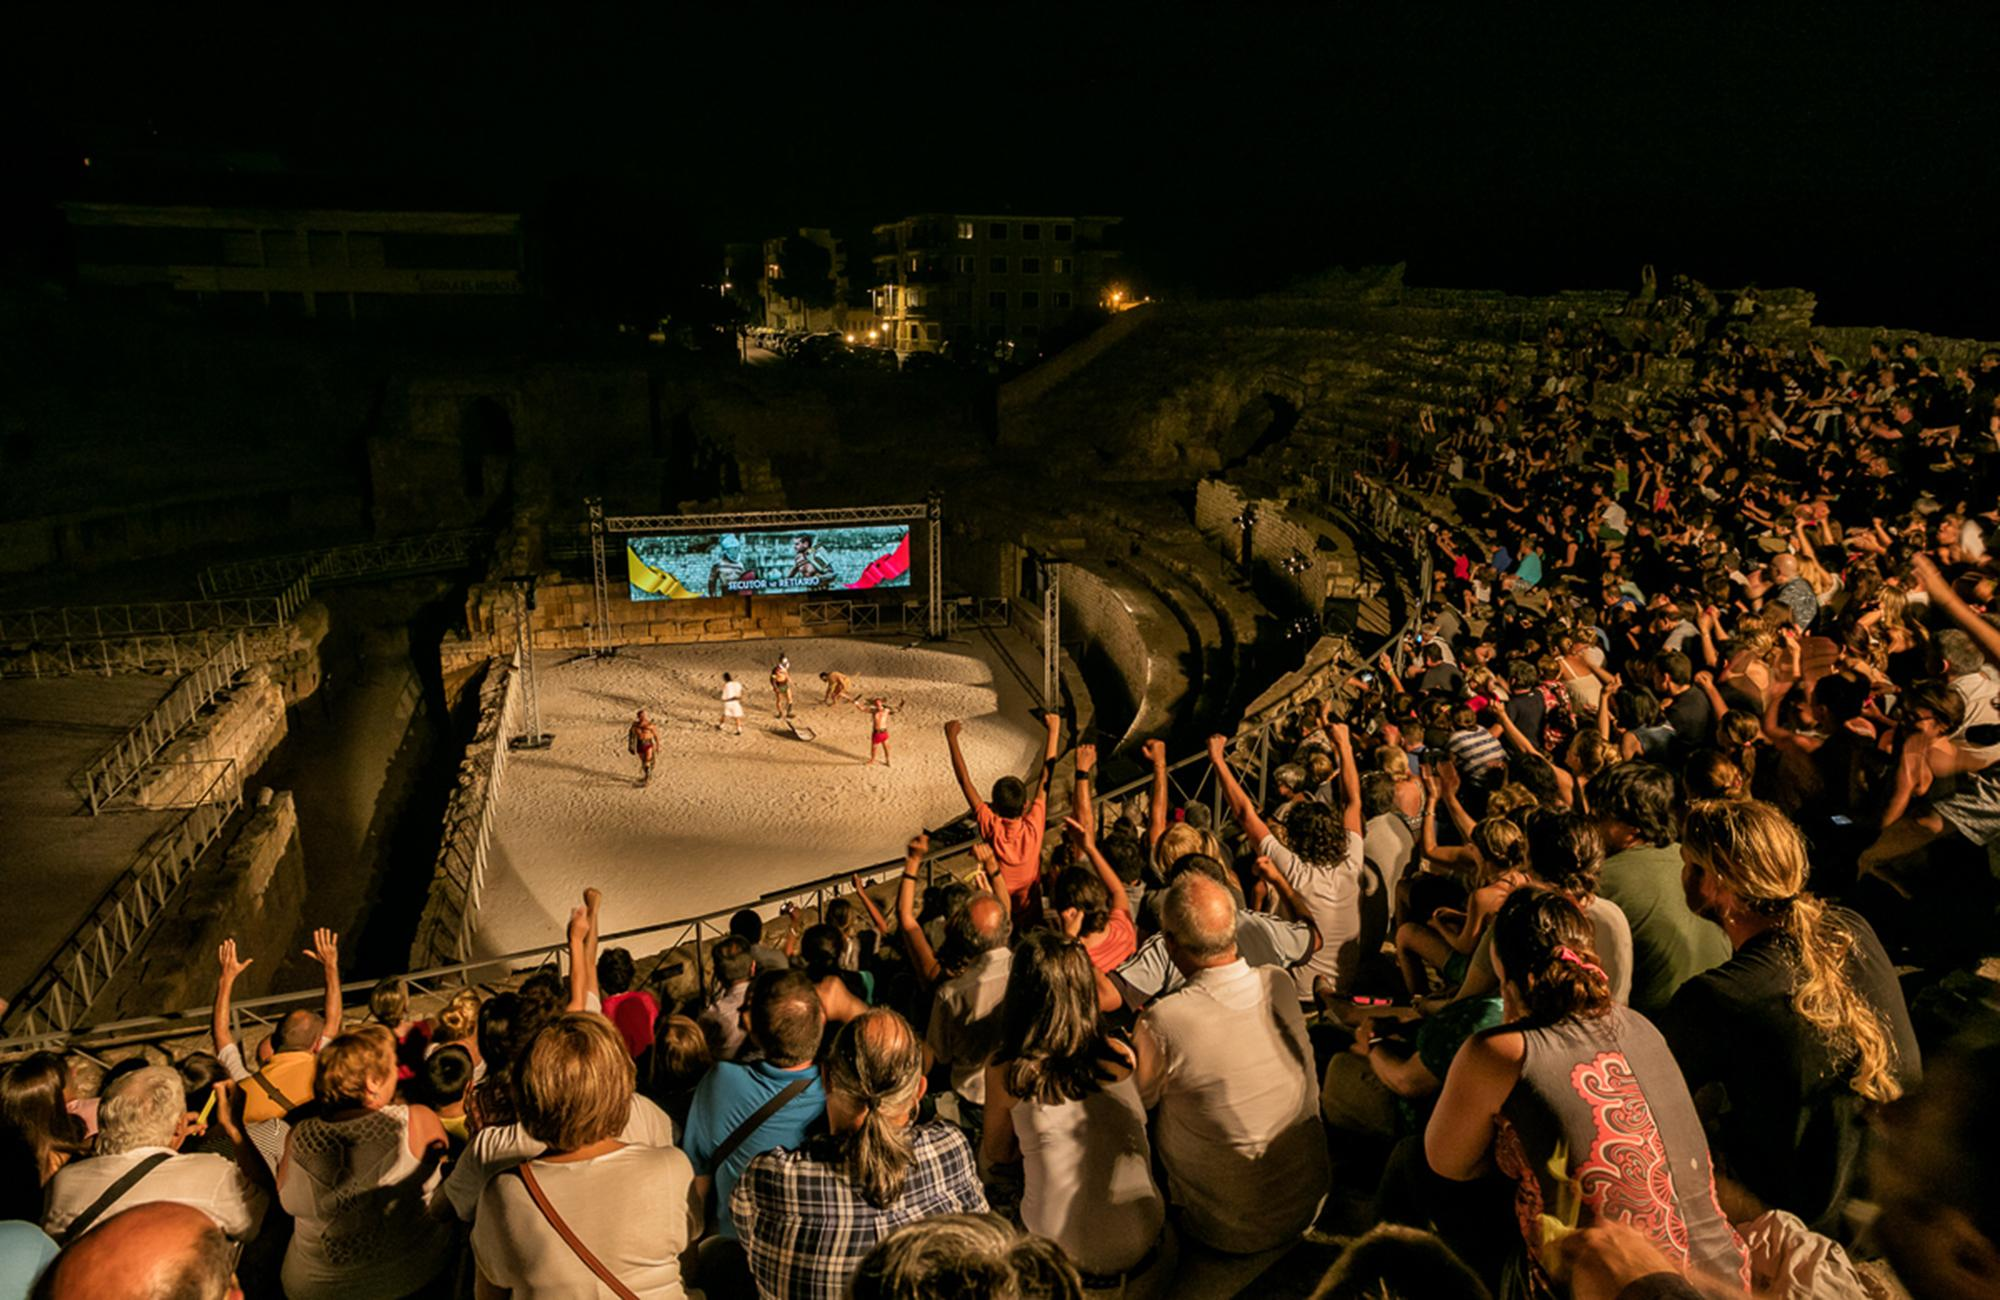 Tarragona's visitors experience the city's Roman past with historical re-enactments. Relive the gladiatorial battles in the Amphitheatre through the use of the latest technology. – © Rafael López-Monné / Tarragona Turisme